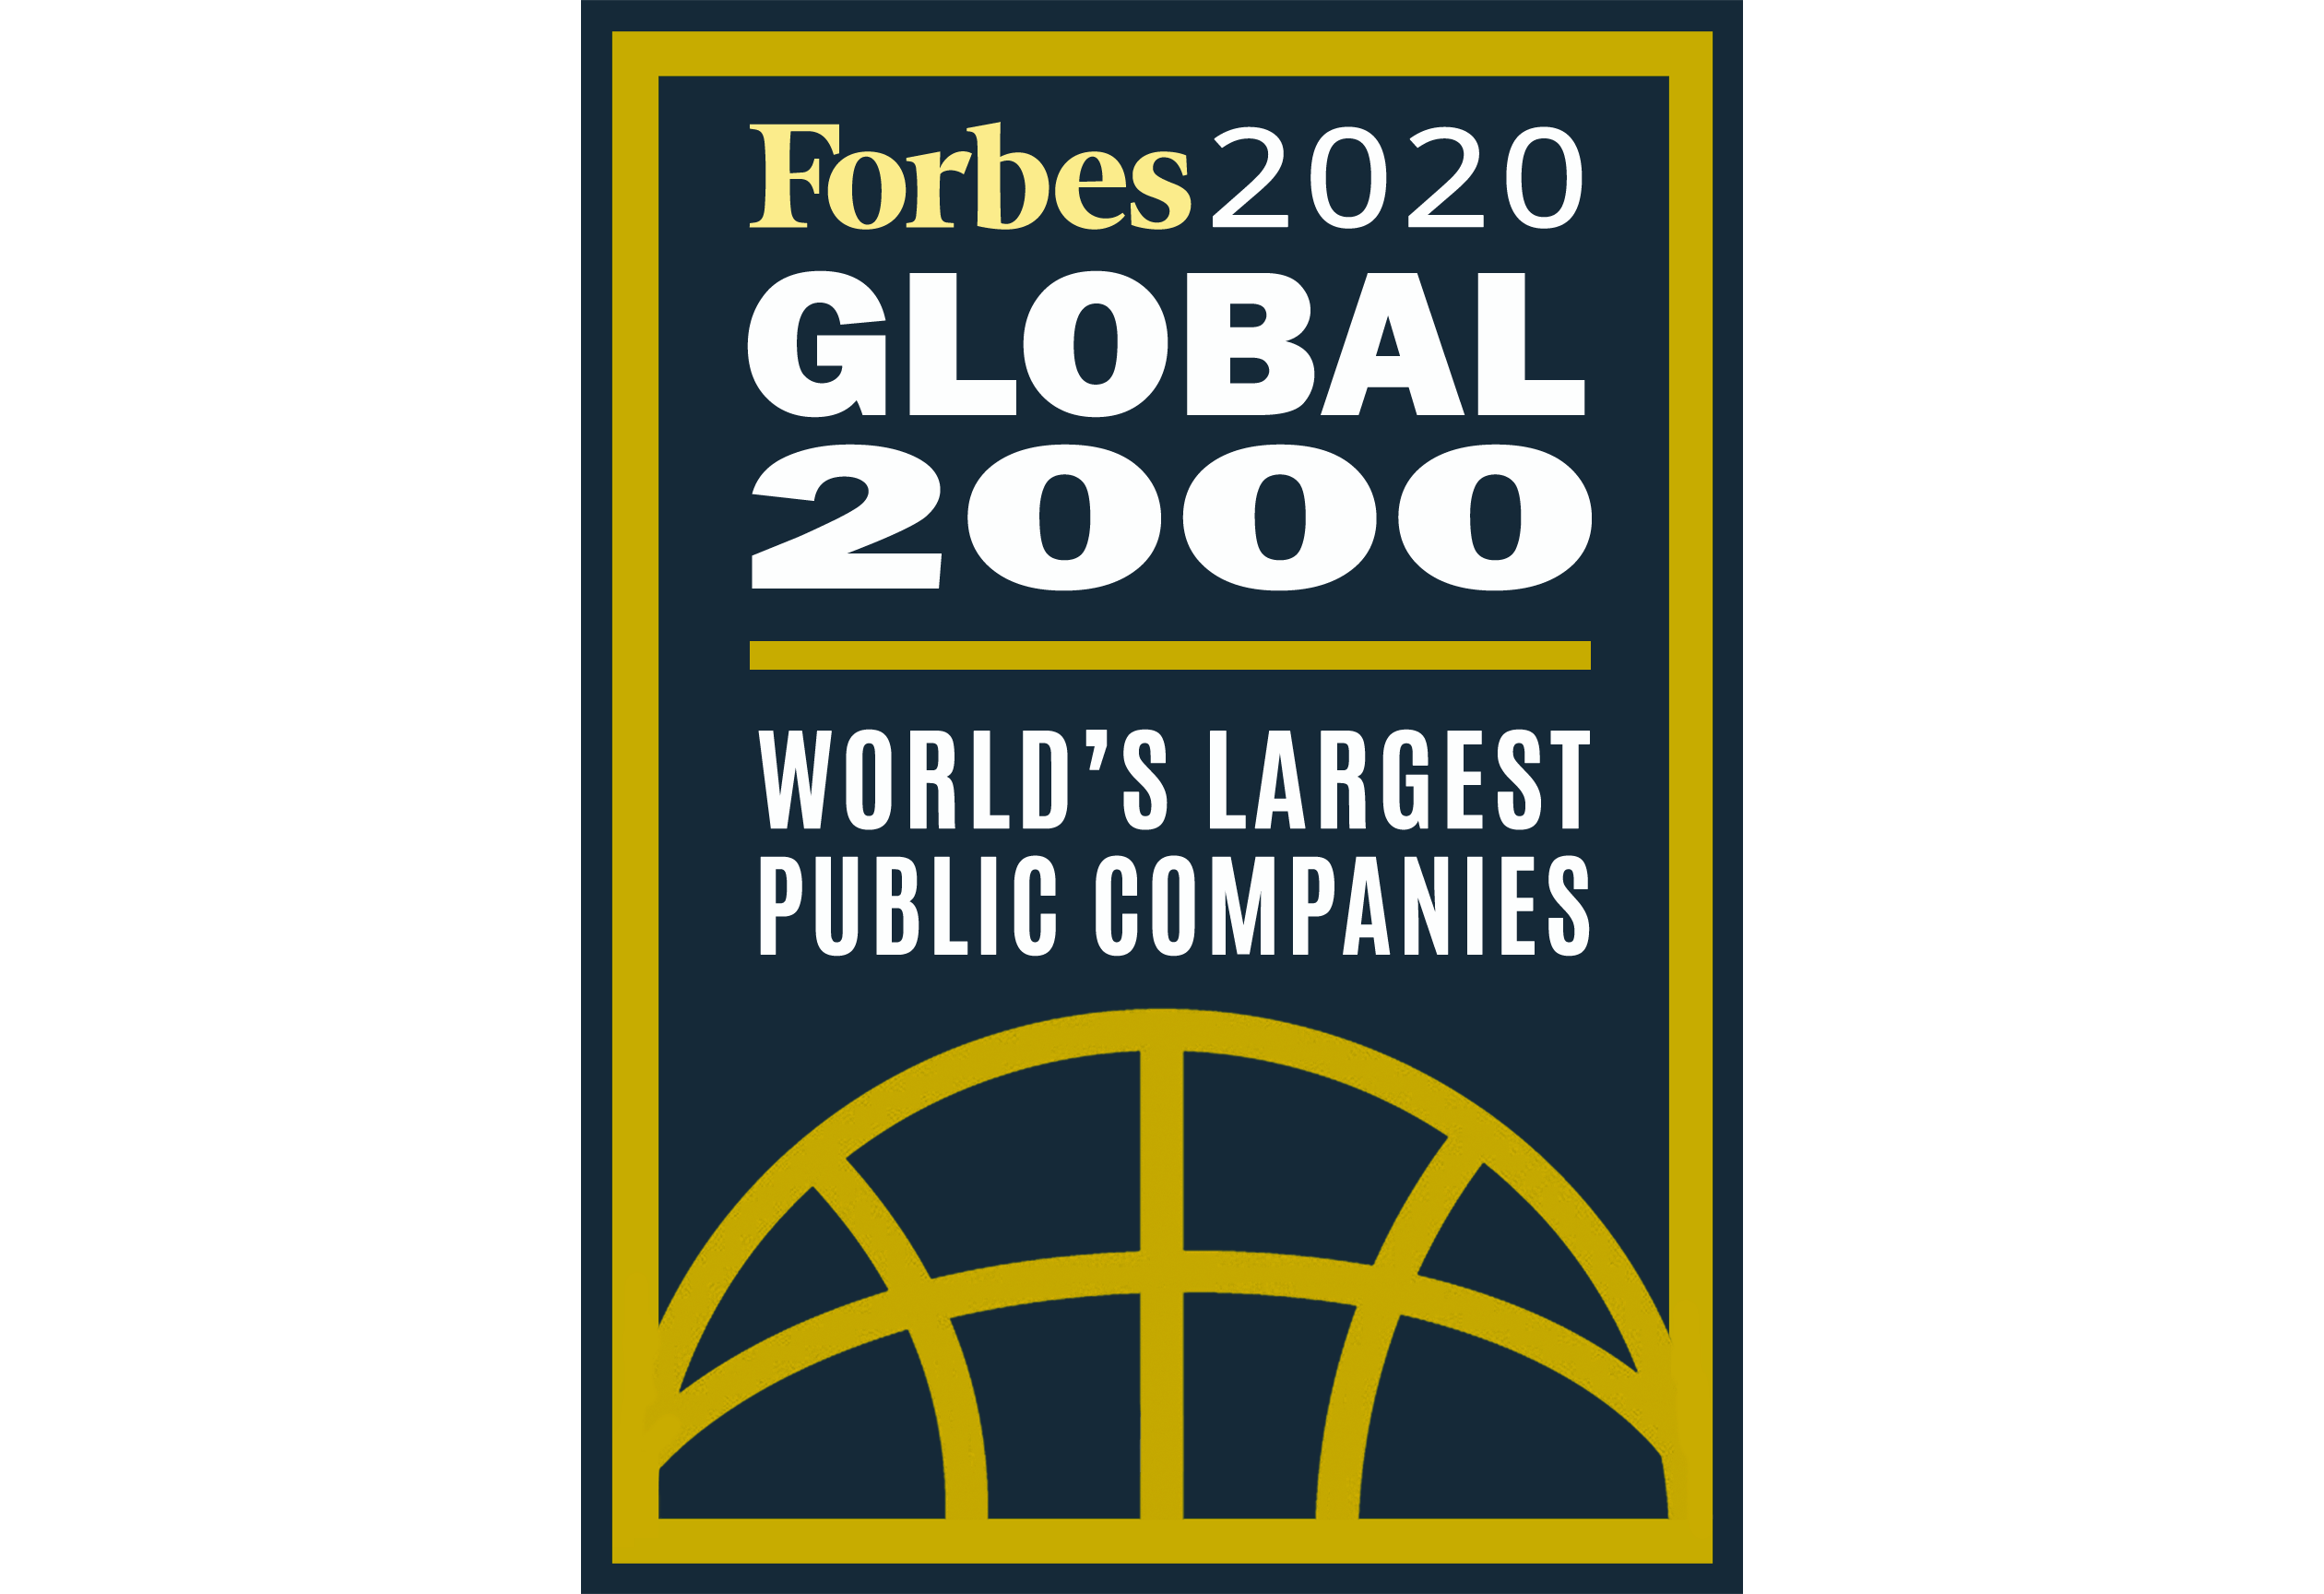 Forbes 2020 Global 2000 World's